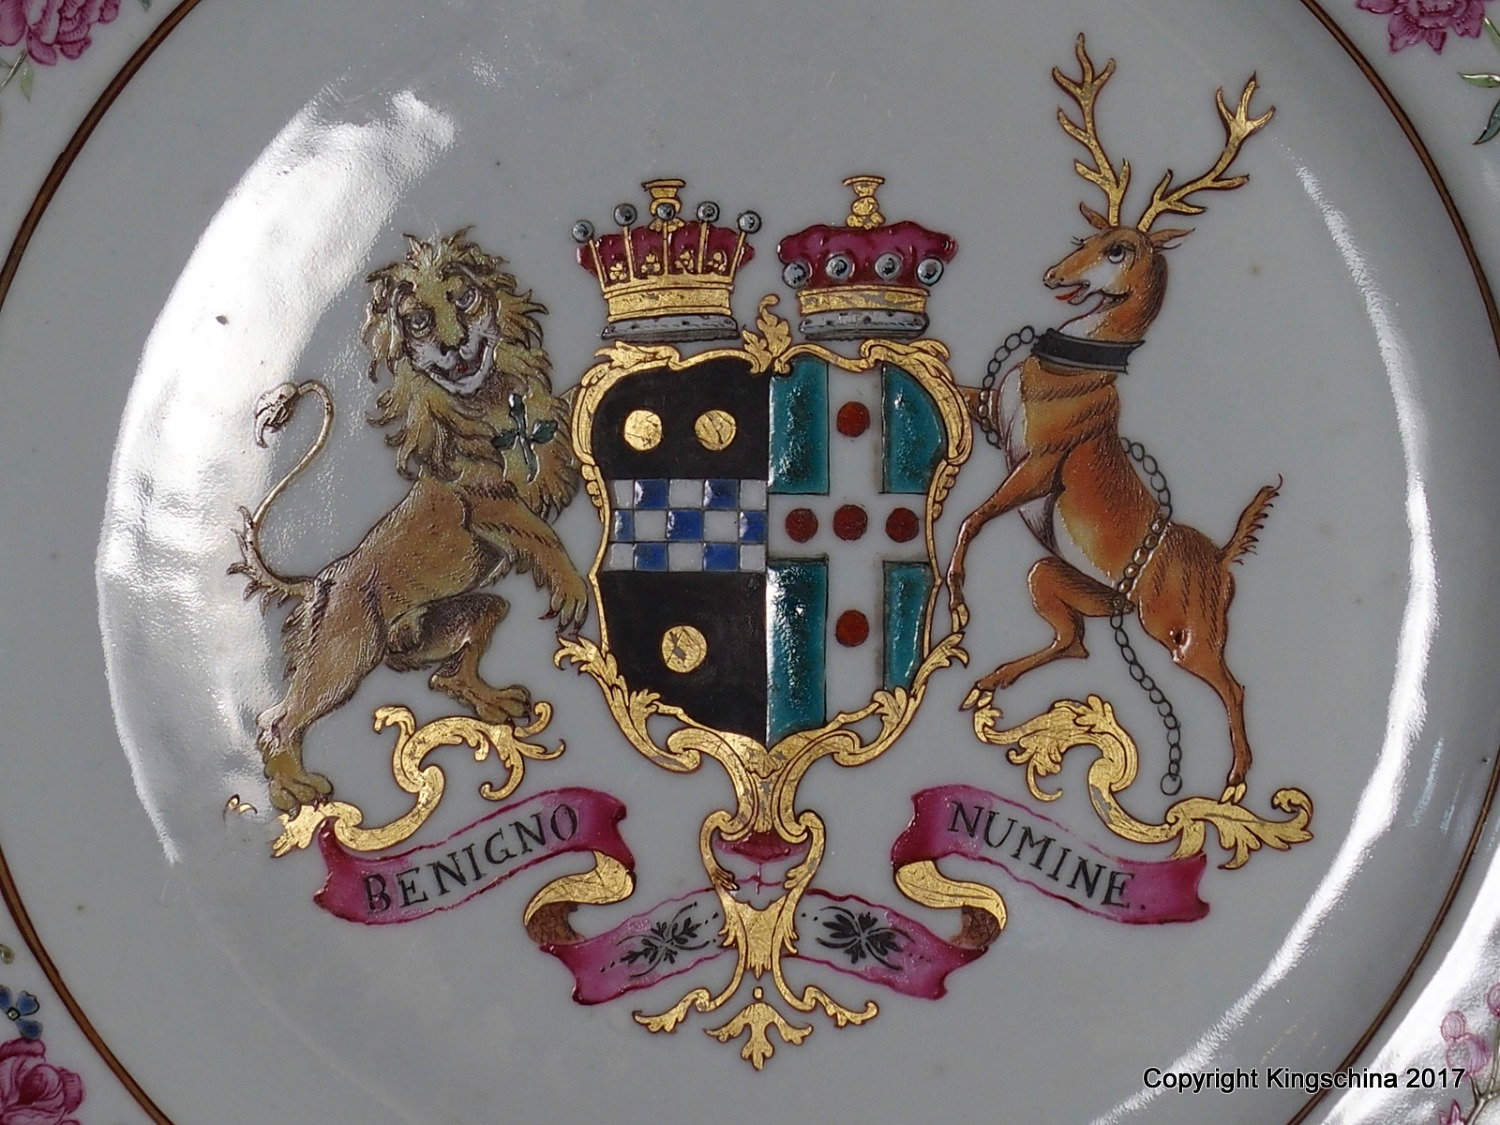 Armorial of Prime Ministers of the United Kingdom